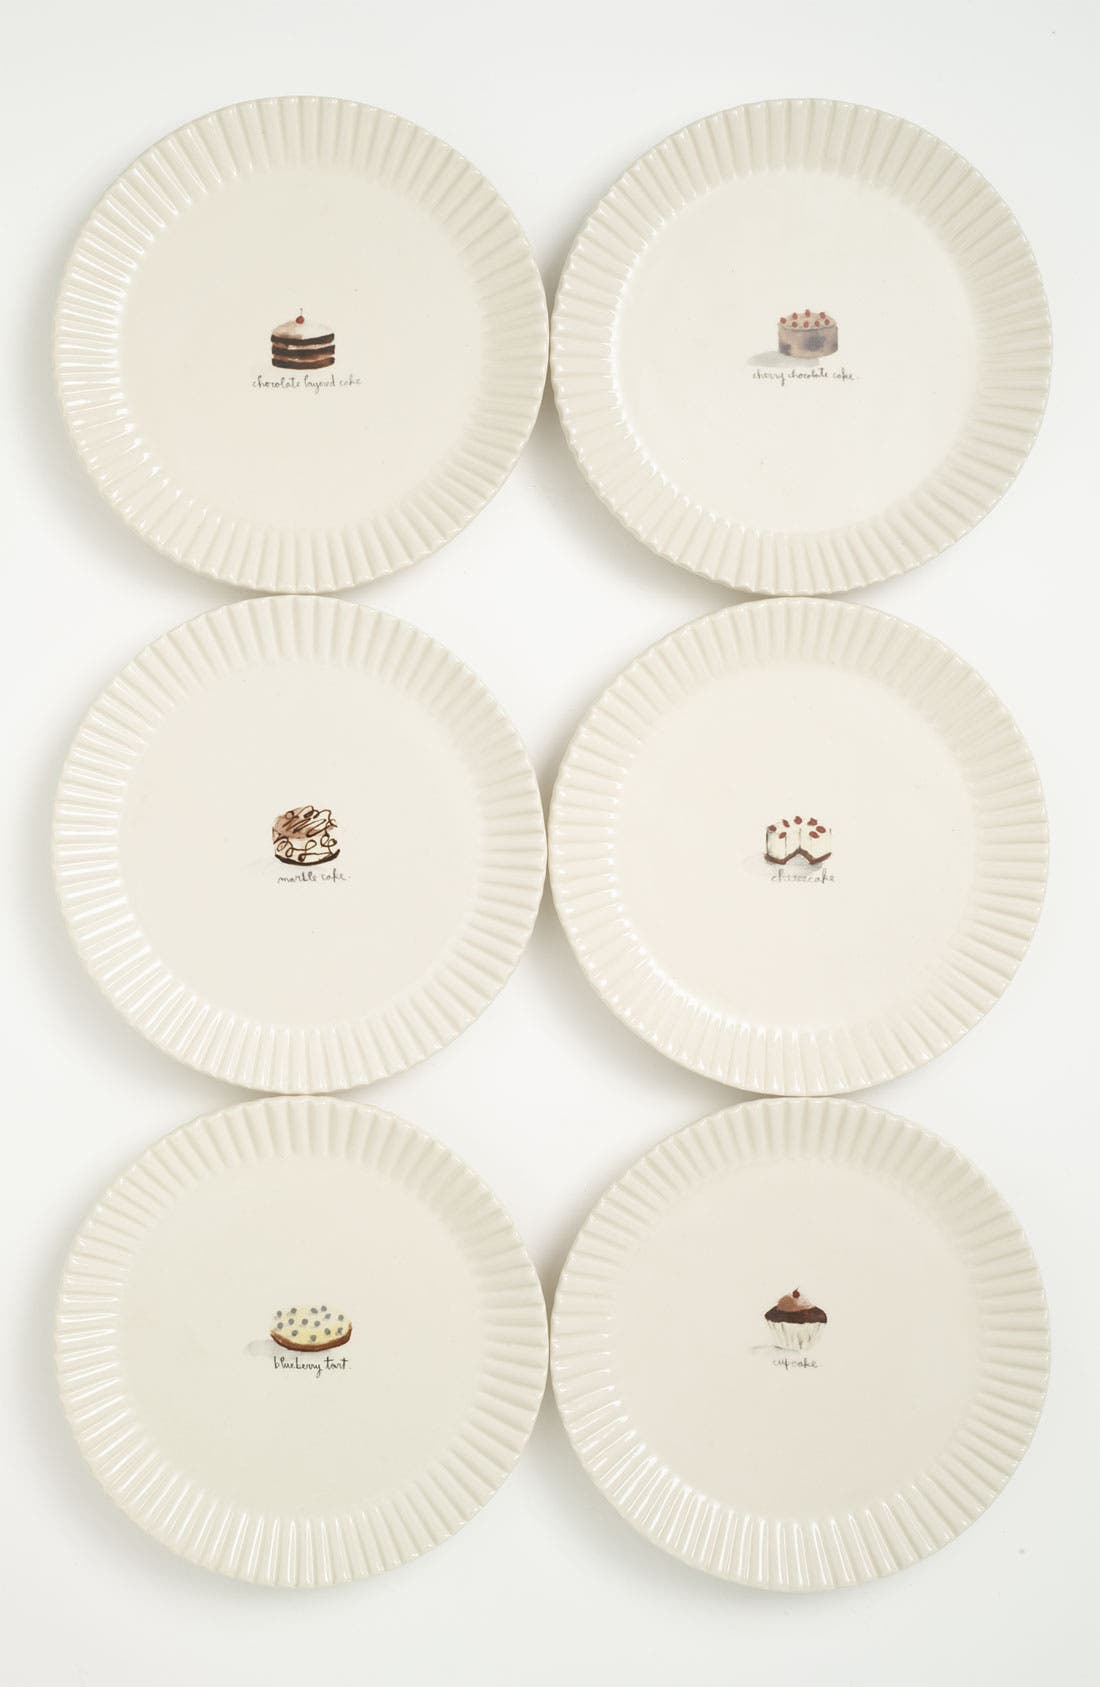 Main Image - Rae Dunn by Magenta Dessert Plates (Set of 6)